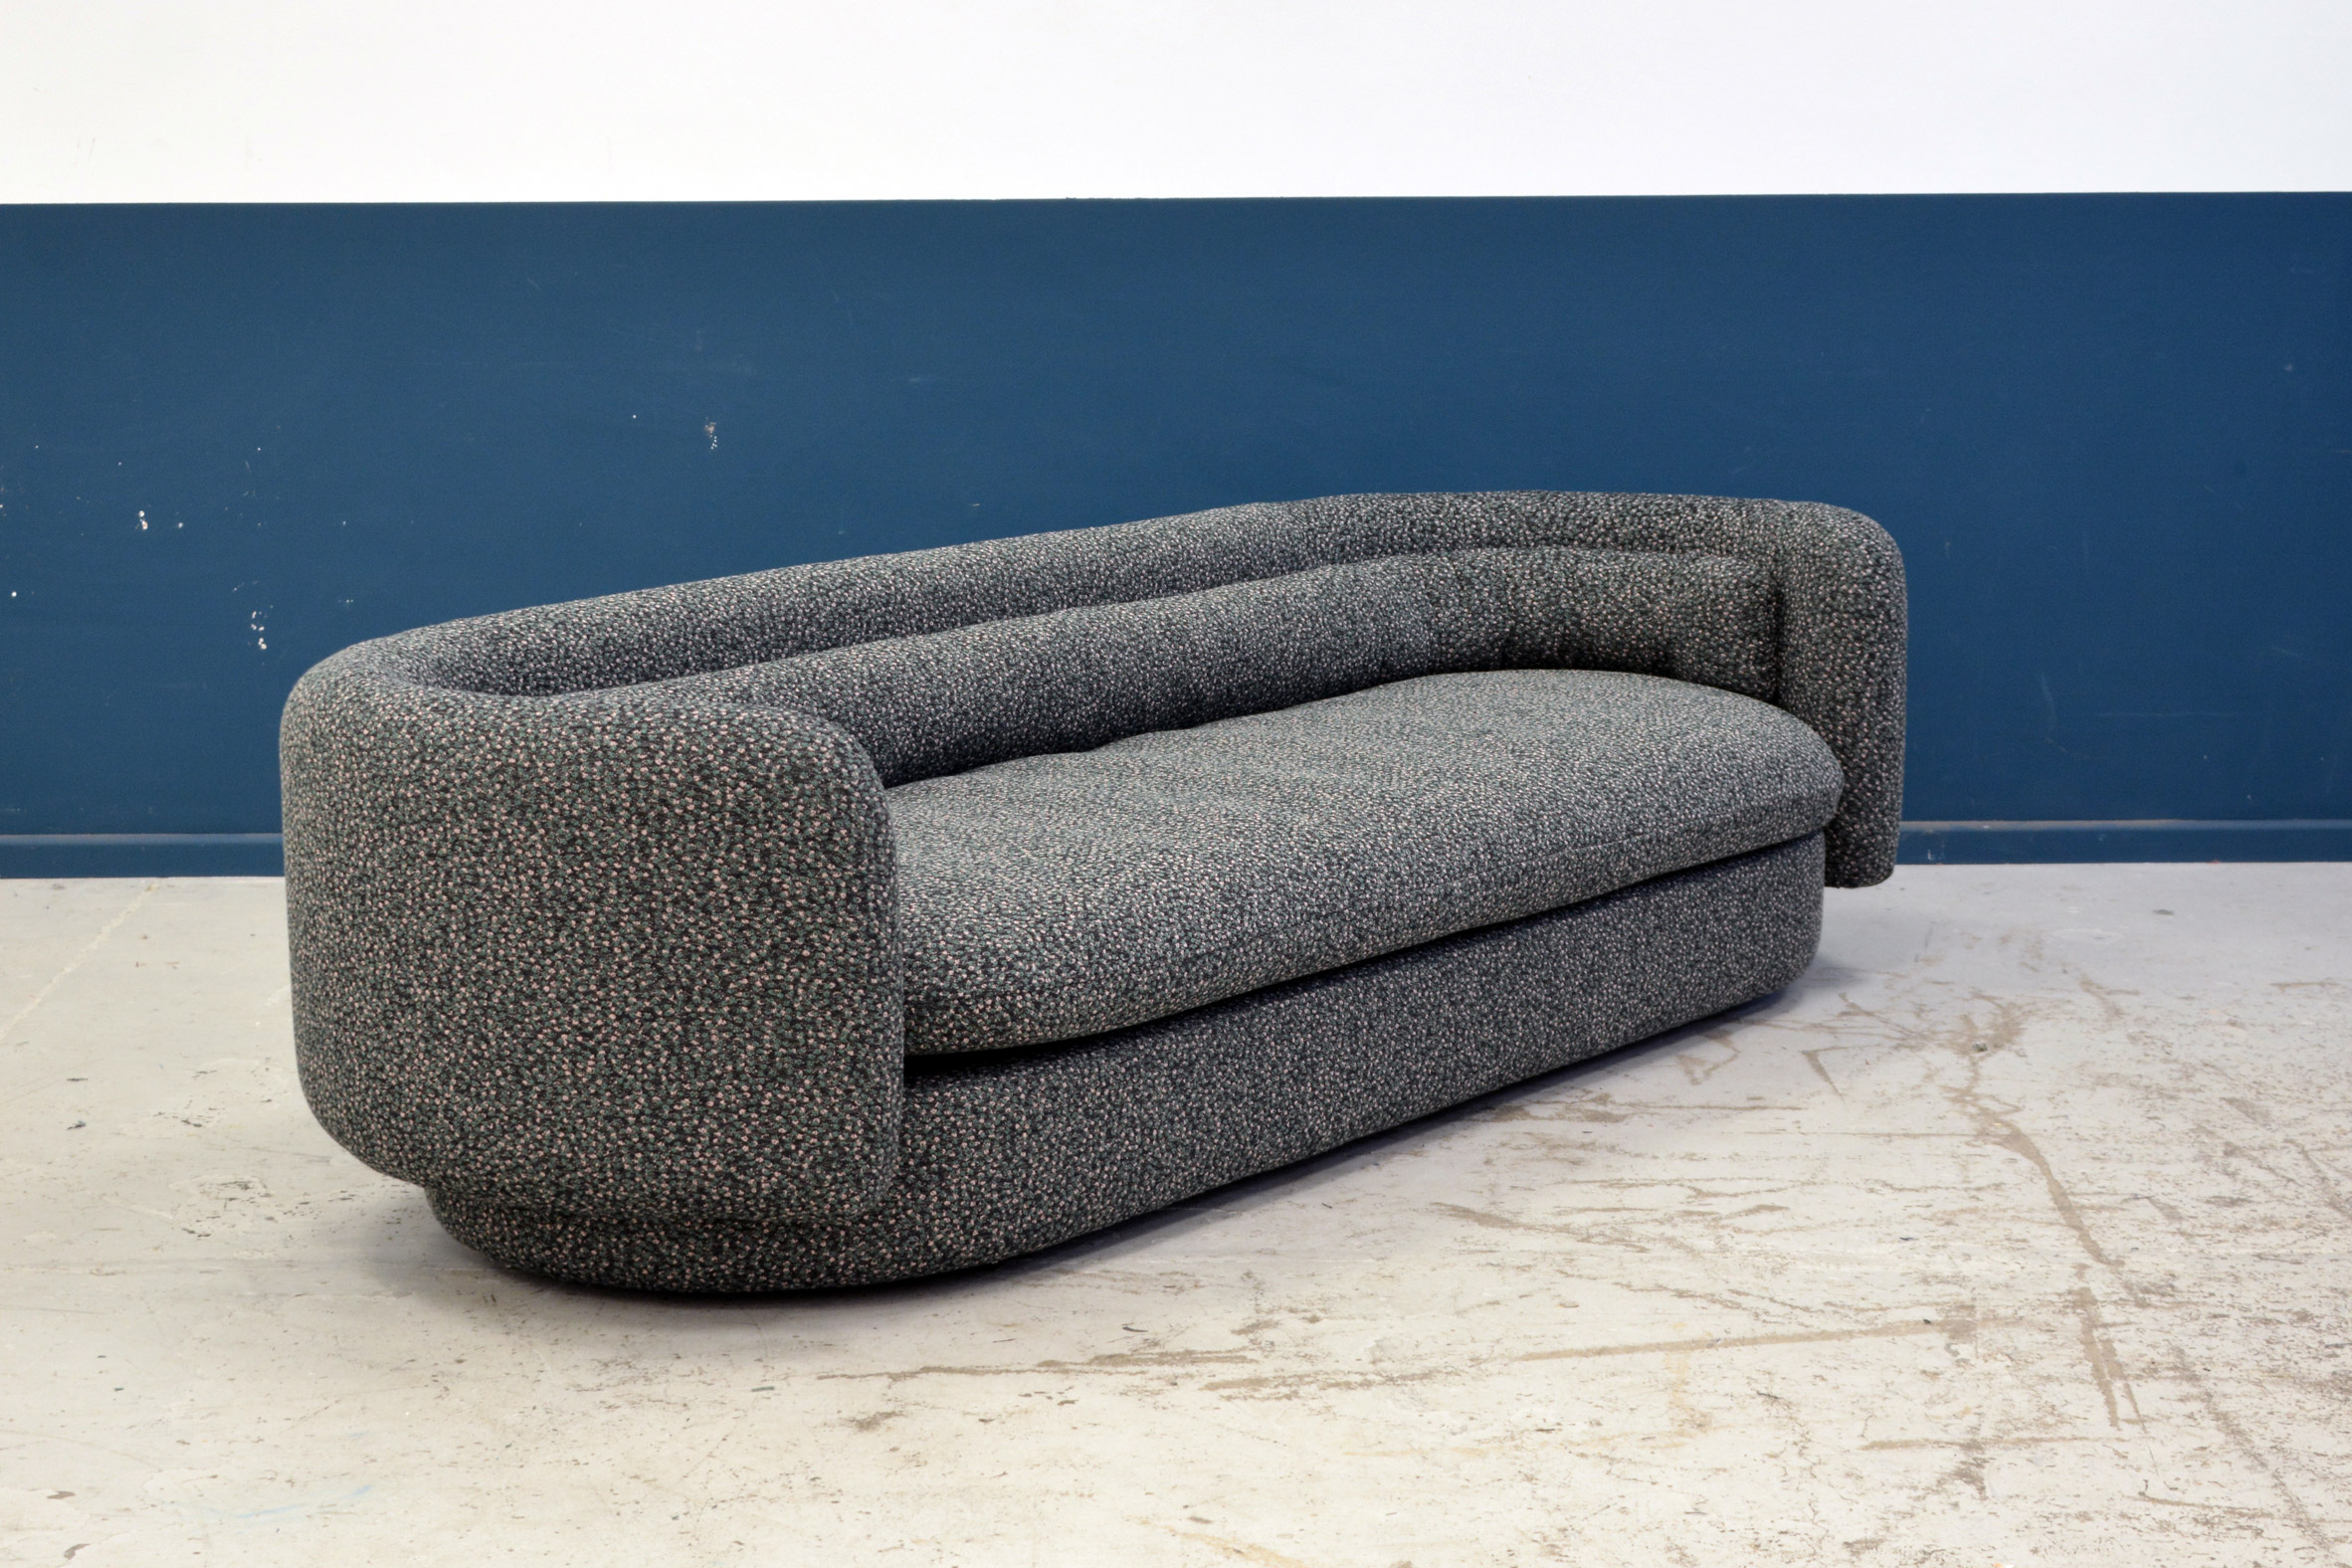 Philippe Malouin combines patterned fabric and rounded forms to create seating range for SCP